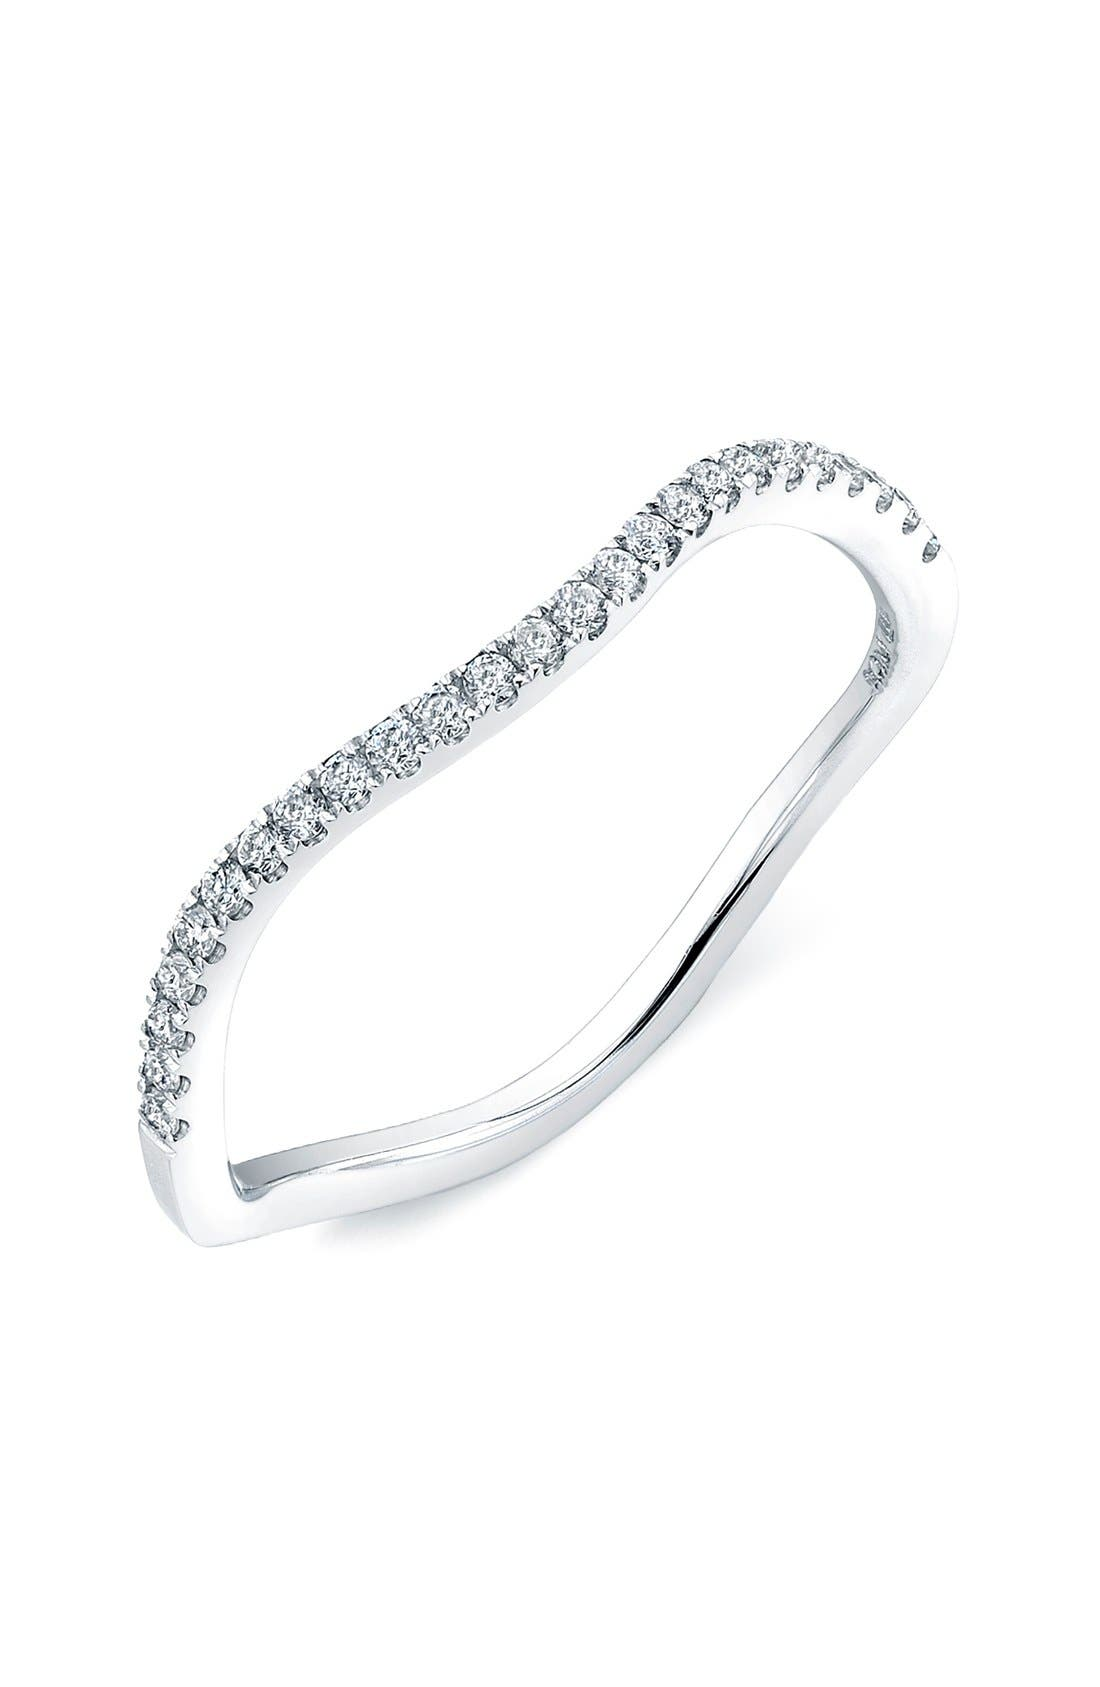 Alternate Image 1 Selected - Bony Levy Stackable Wavy Diamond Ring (Nordstrom Exclusive)